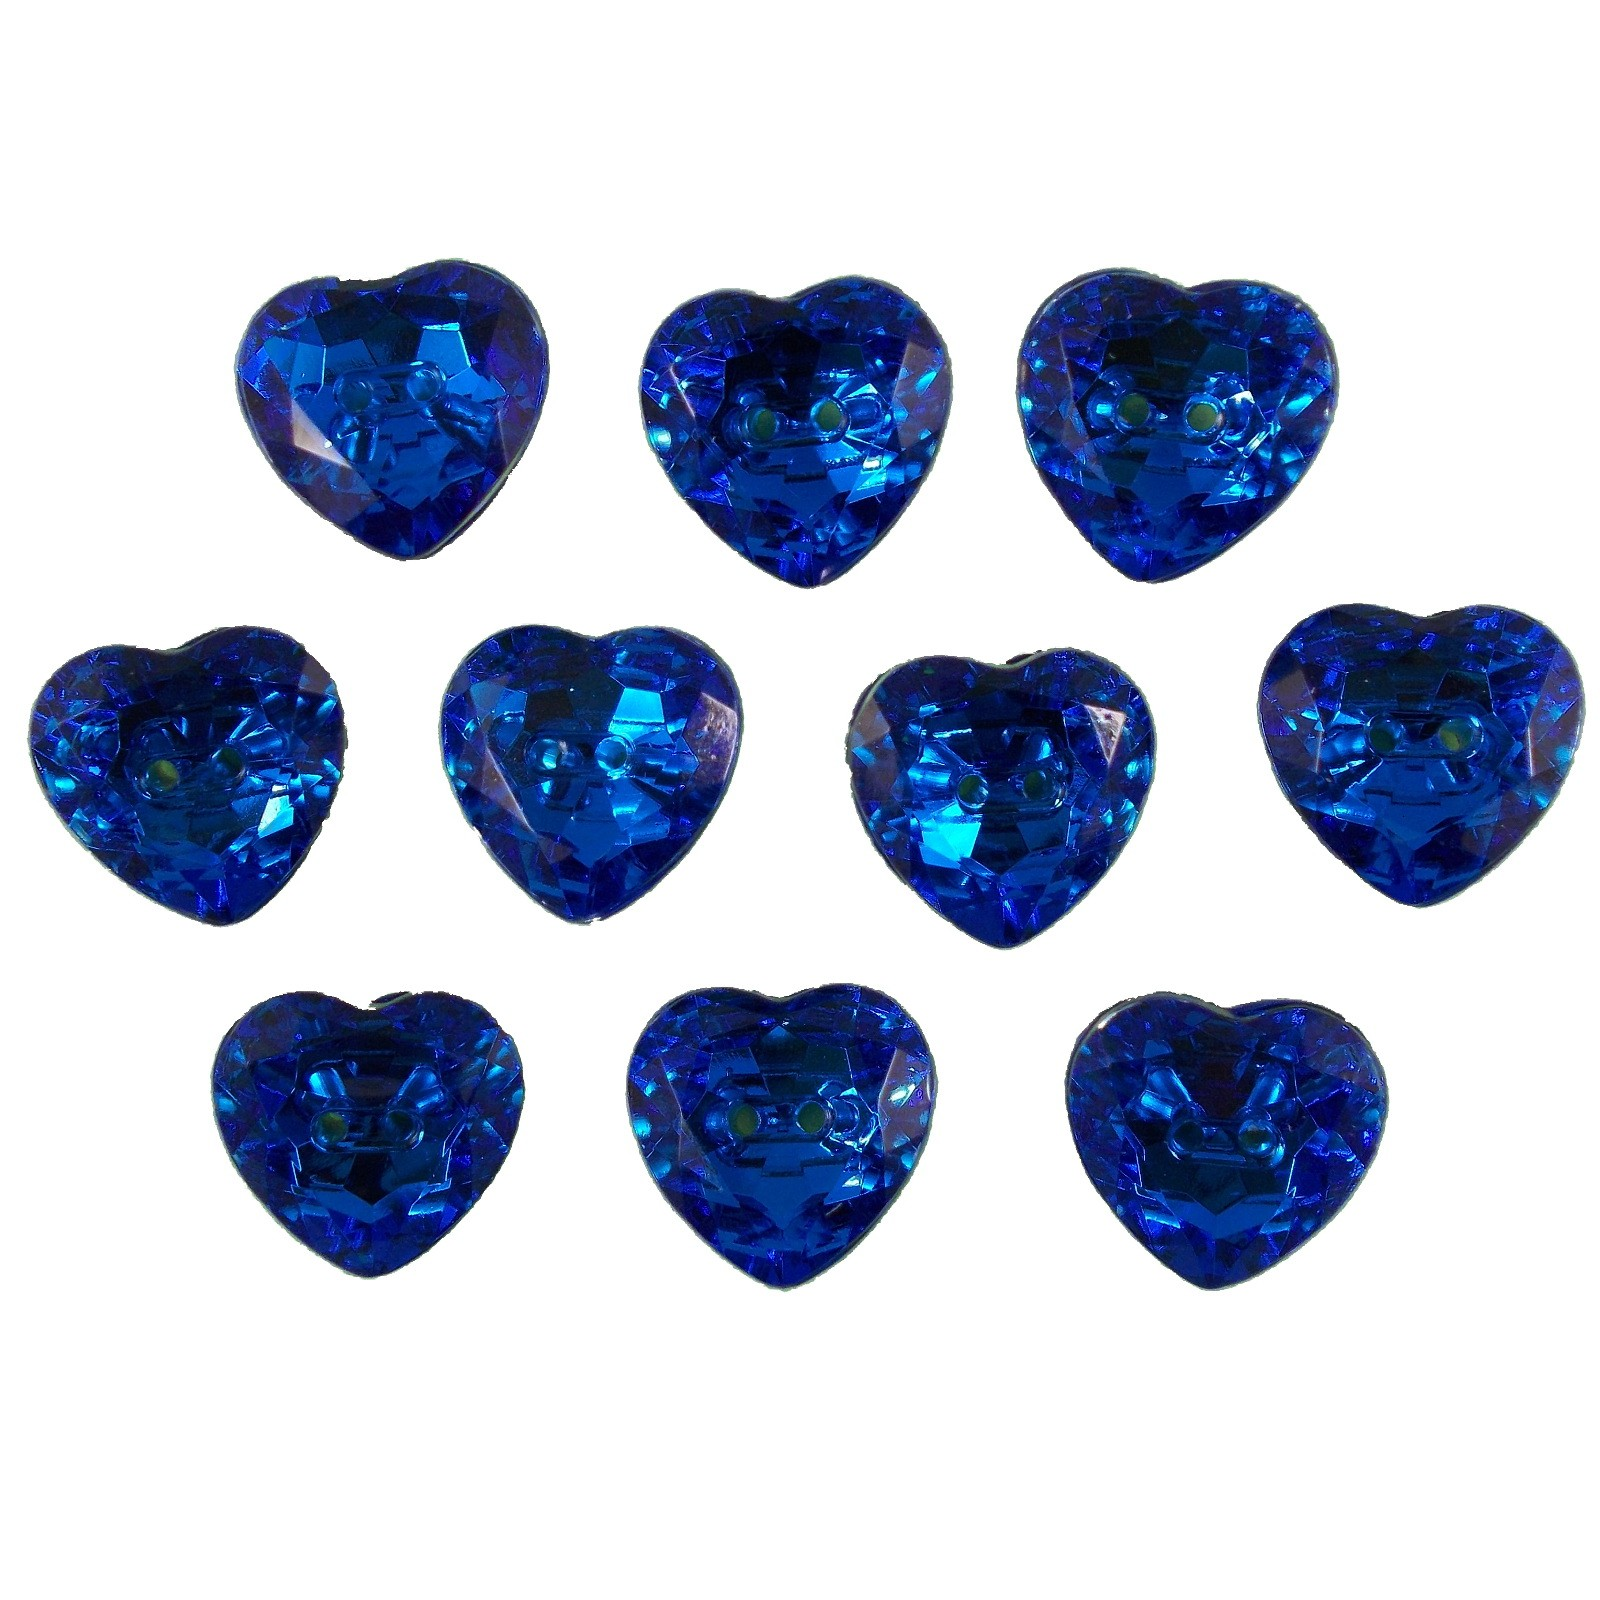 Acrylic Crystal Effect Heart Shape Buttons 12mm Blue Pack of 10